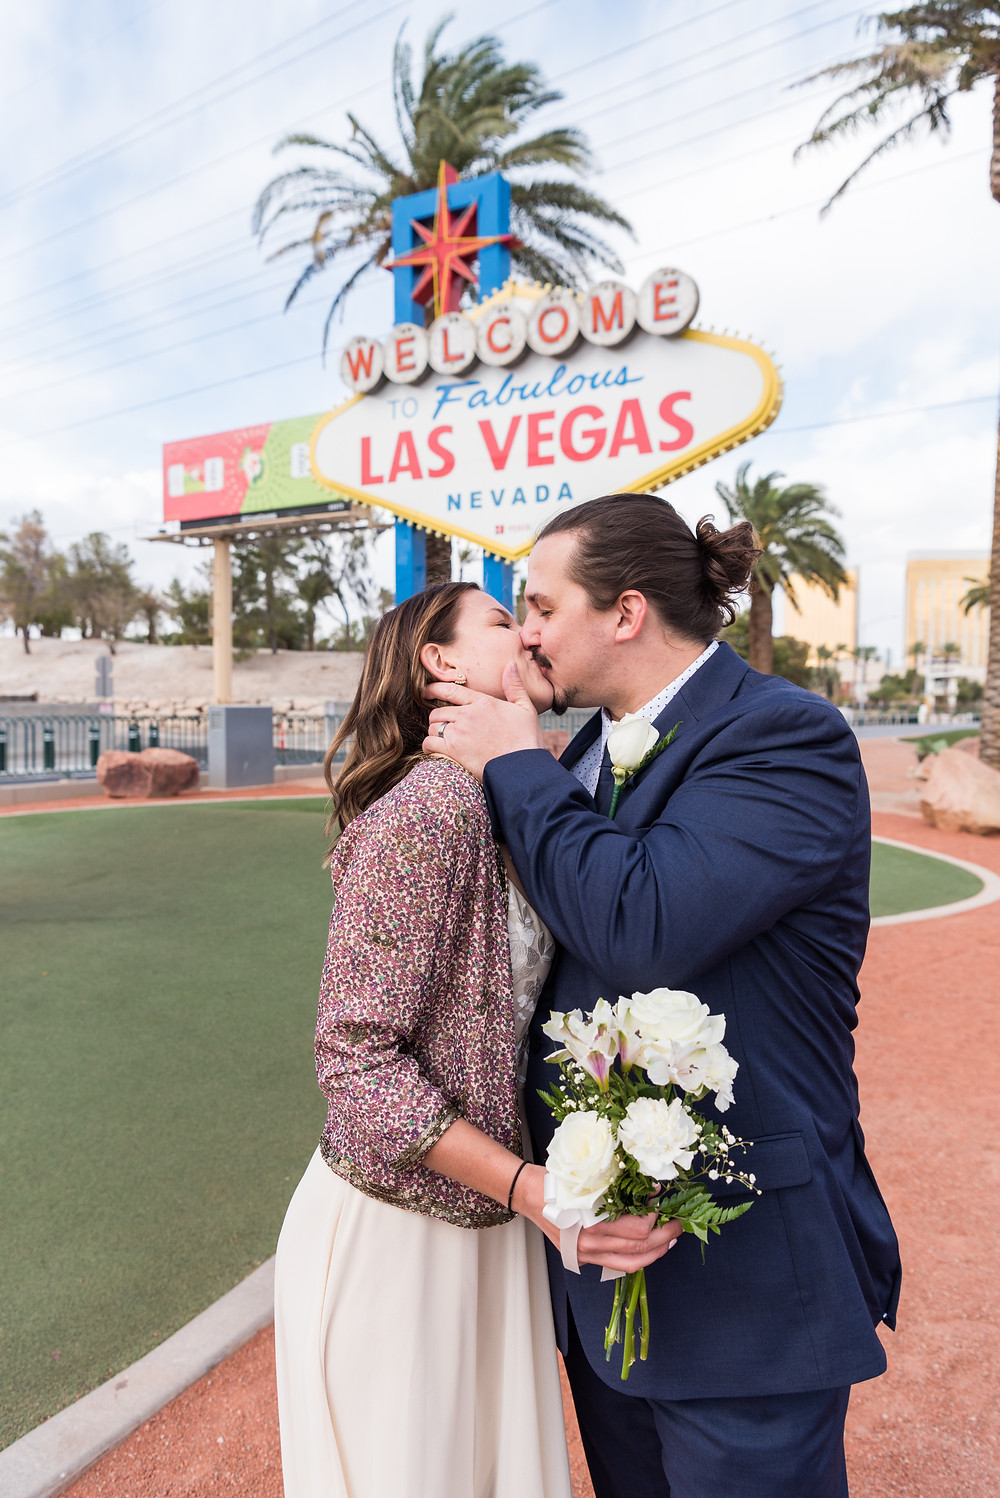 desert wedding, chapel wedding, las vegas, las vegas wedding photographer, downtown las vegas, intimate wedding, vegas elopement, wedding inspiration, vegas elopement photographer, art murals, pandemic elopement, pandemic, covid-19 wedding, las vegas strip, elopement wedding, destination wedding photographer, fun vegas elopement, champagne pop, wedding toast, fun elopement, vegas fun elopement, epic elopement, las vegas sign, iconic wedding, vintage vegas